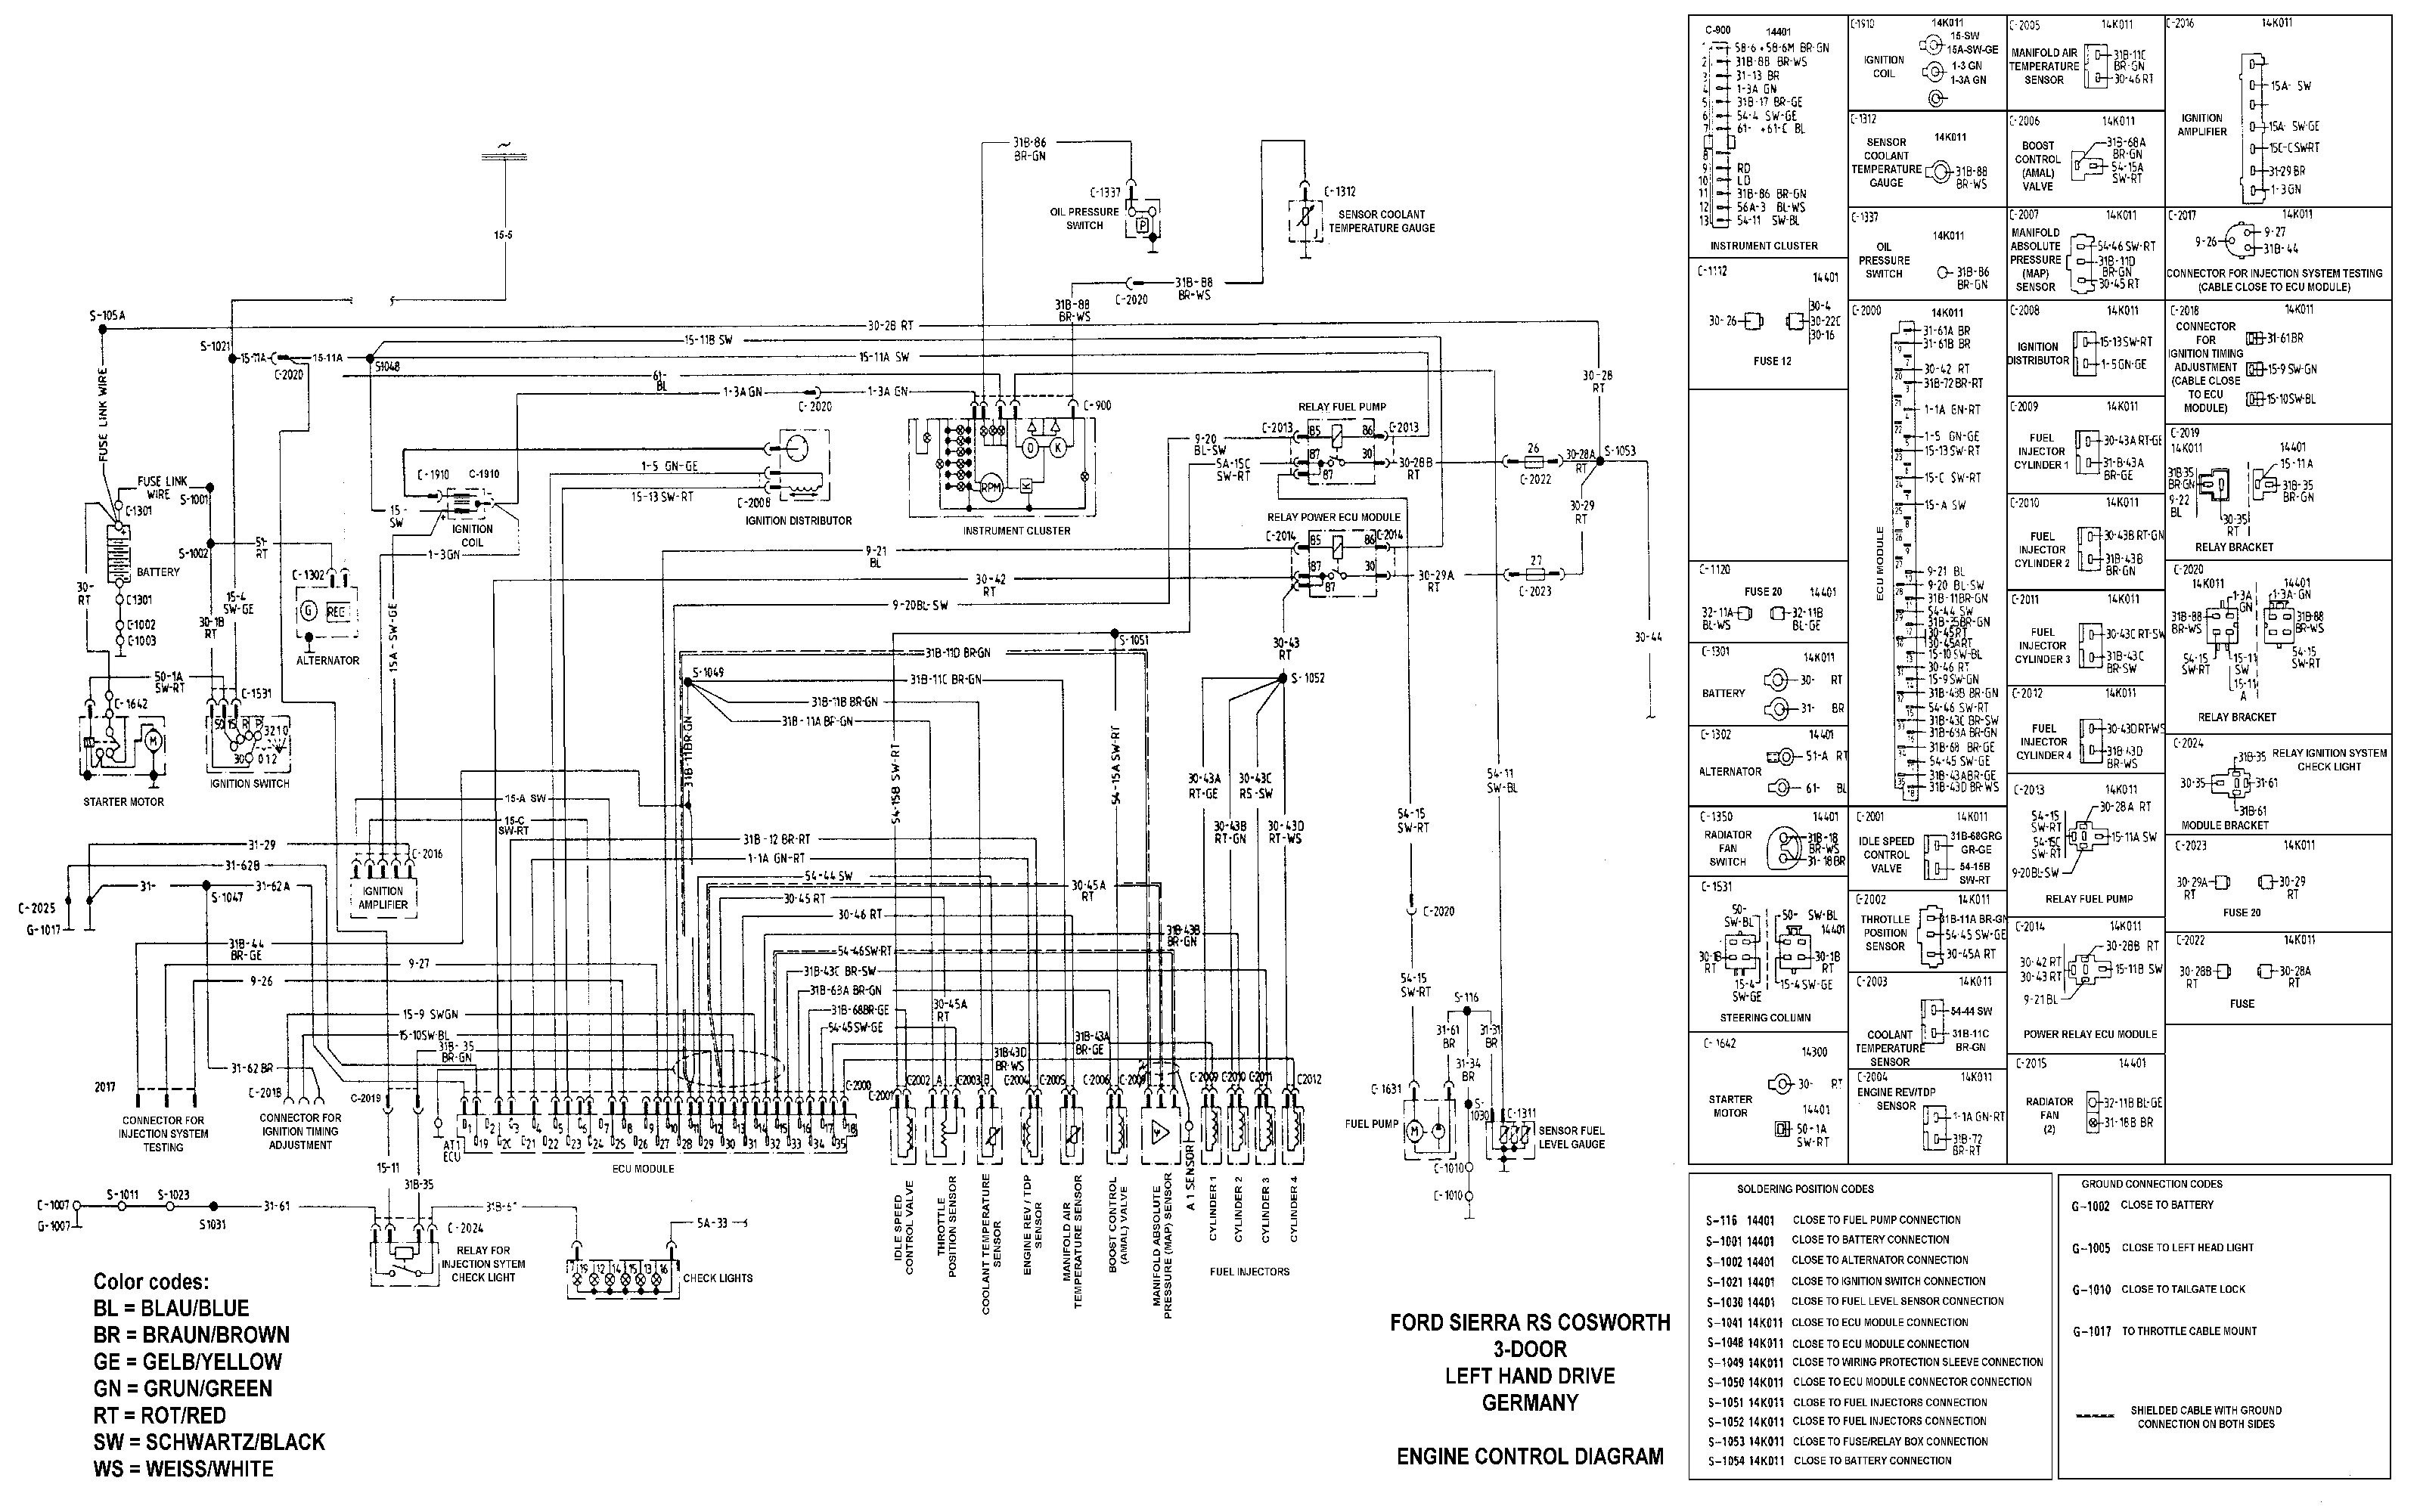 Ikon Wiring Diagram | Wiring Diagram on